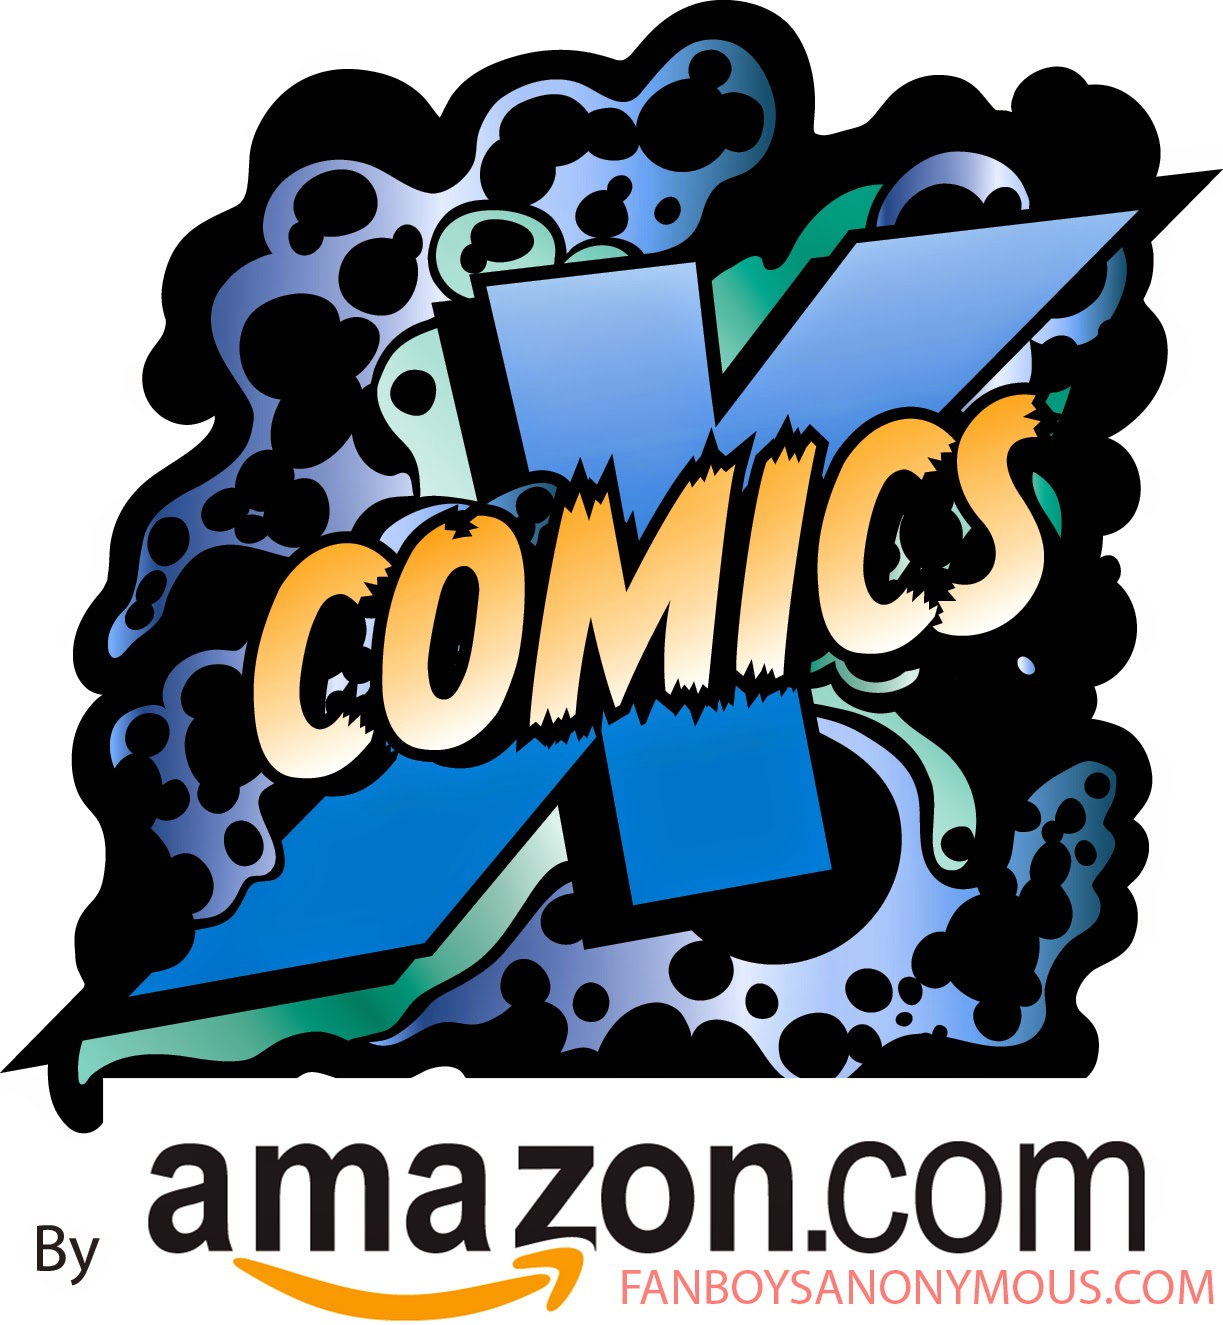 free comics iphone app android kindle owned money